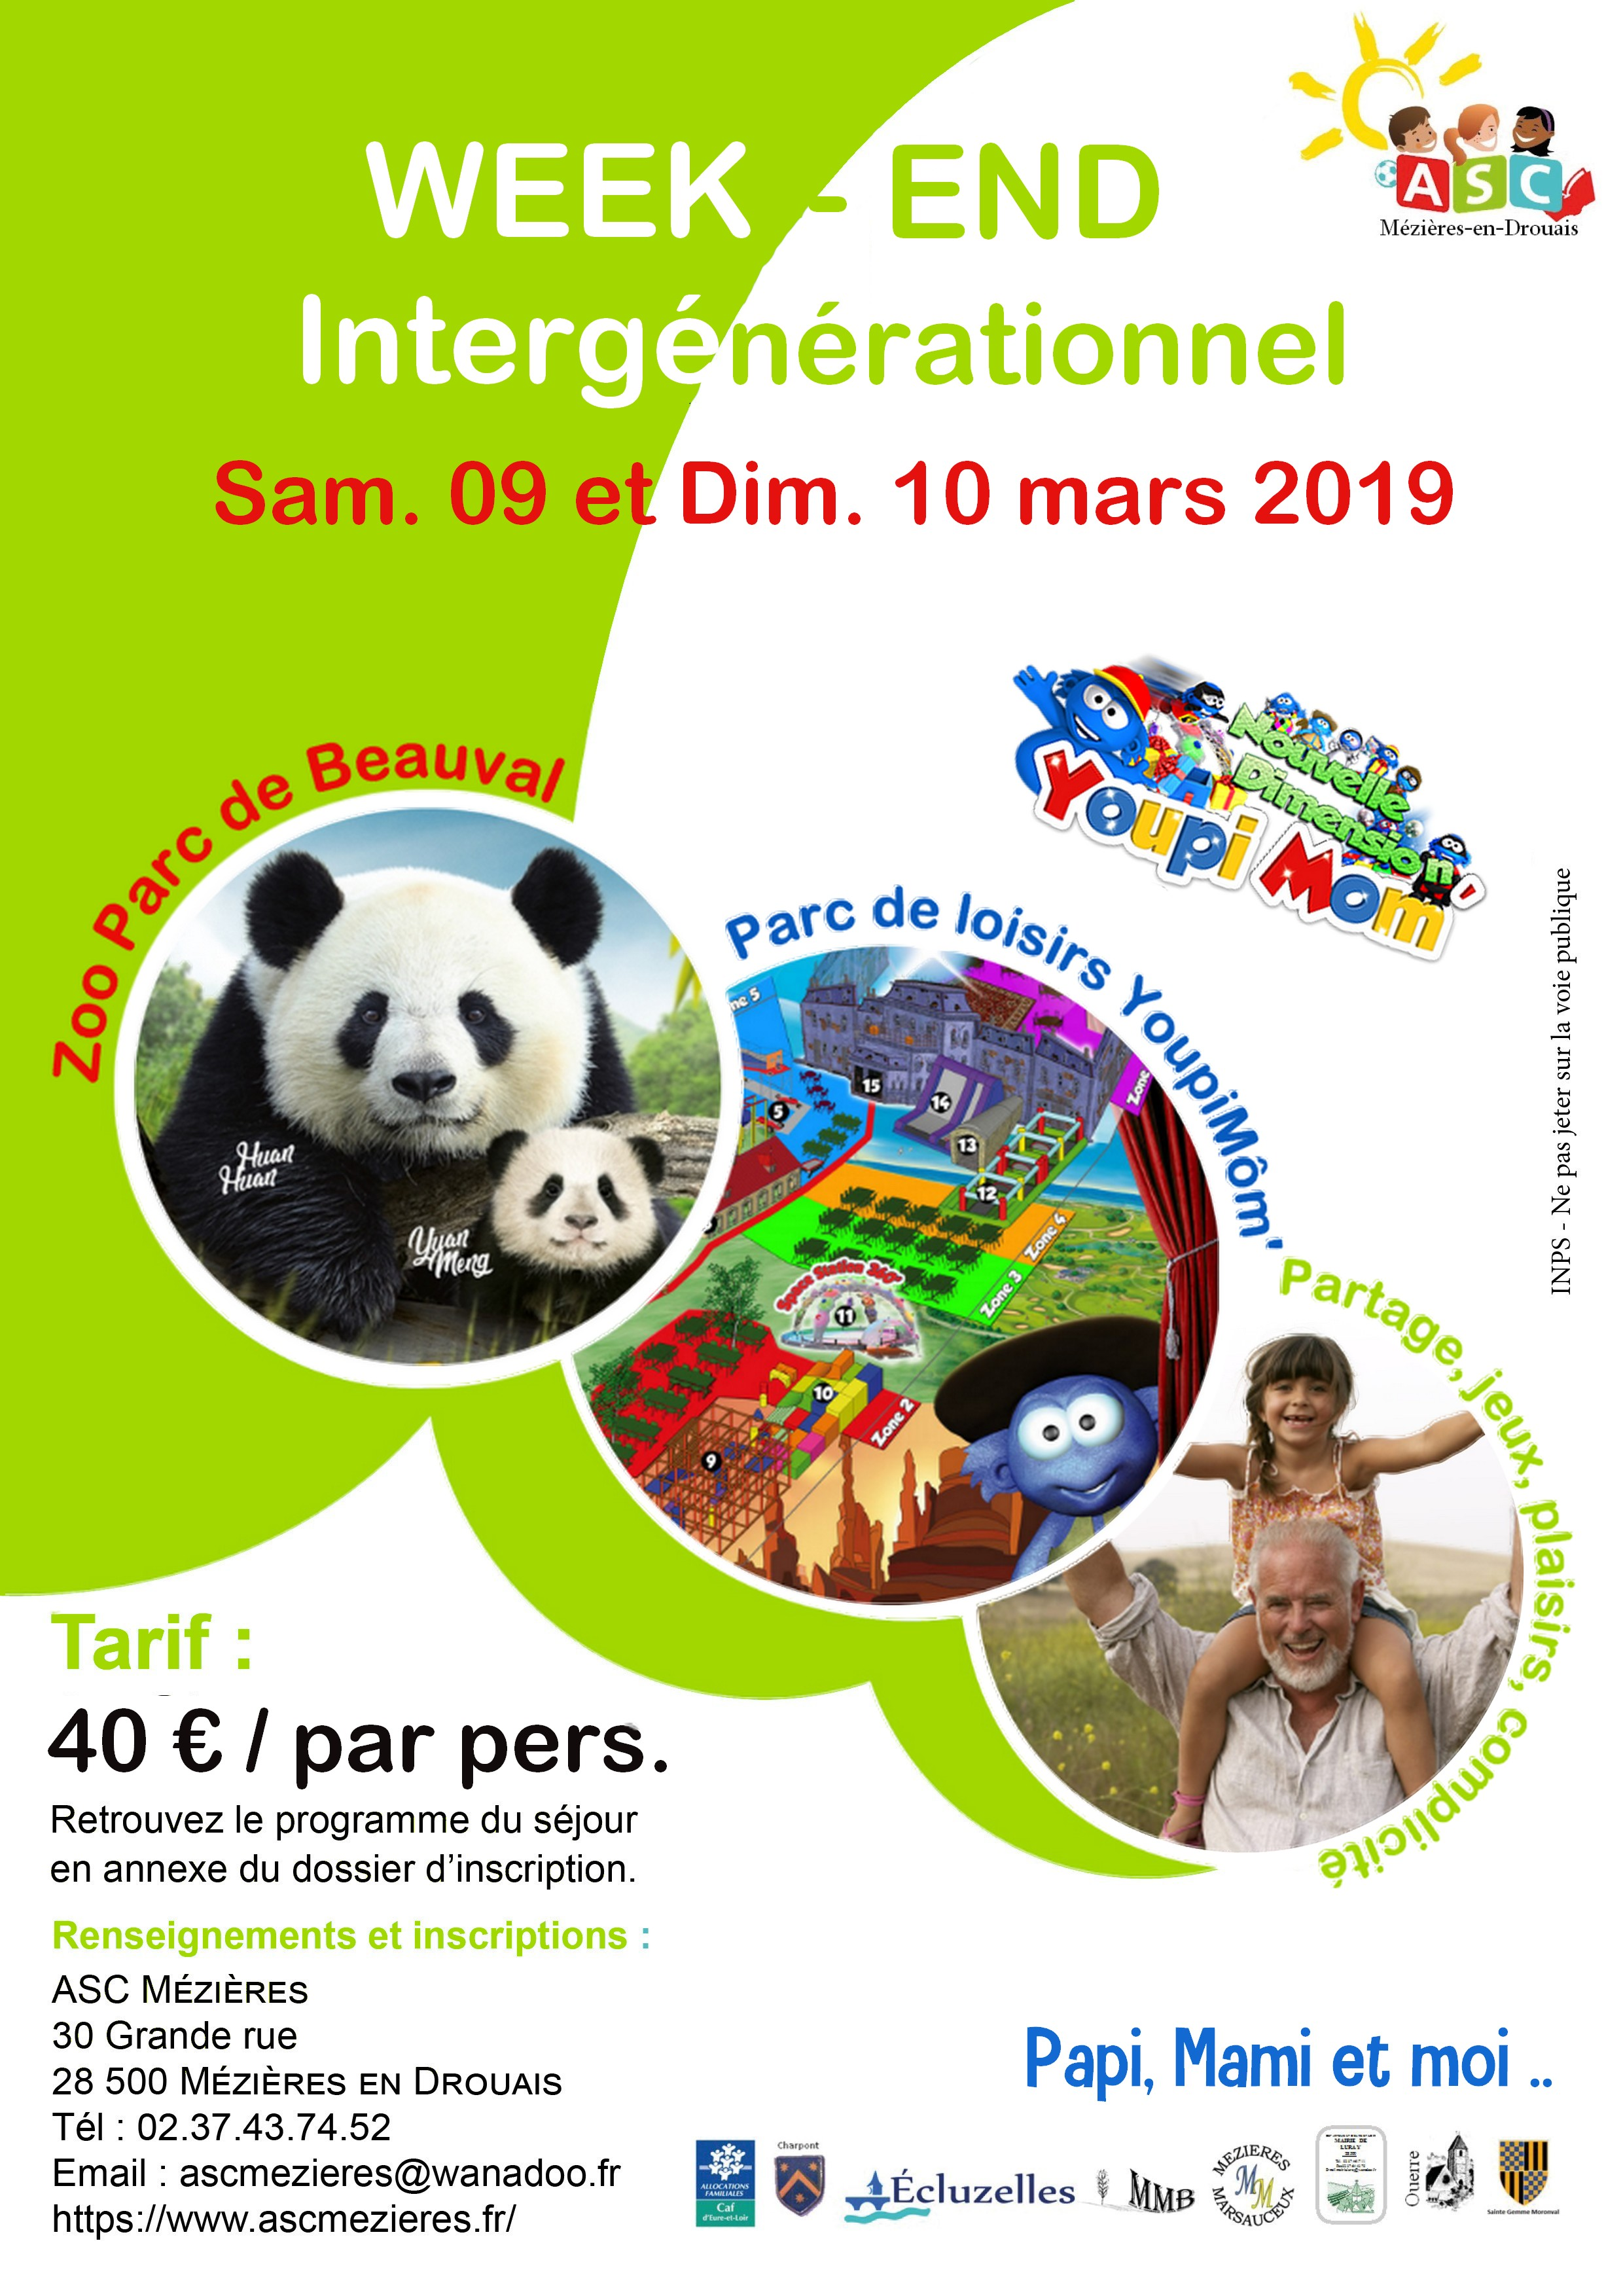 affiche we interg 09 10 mars 19